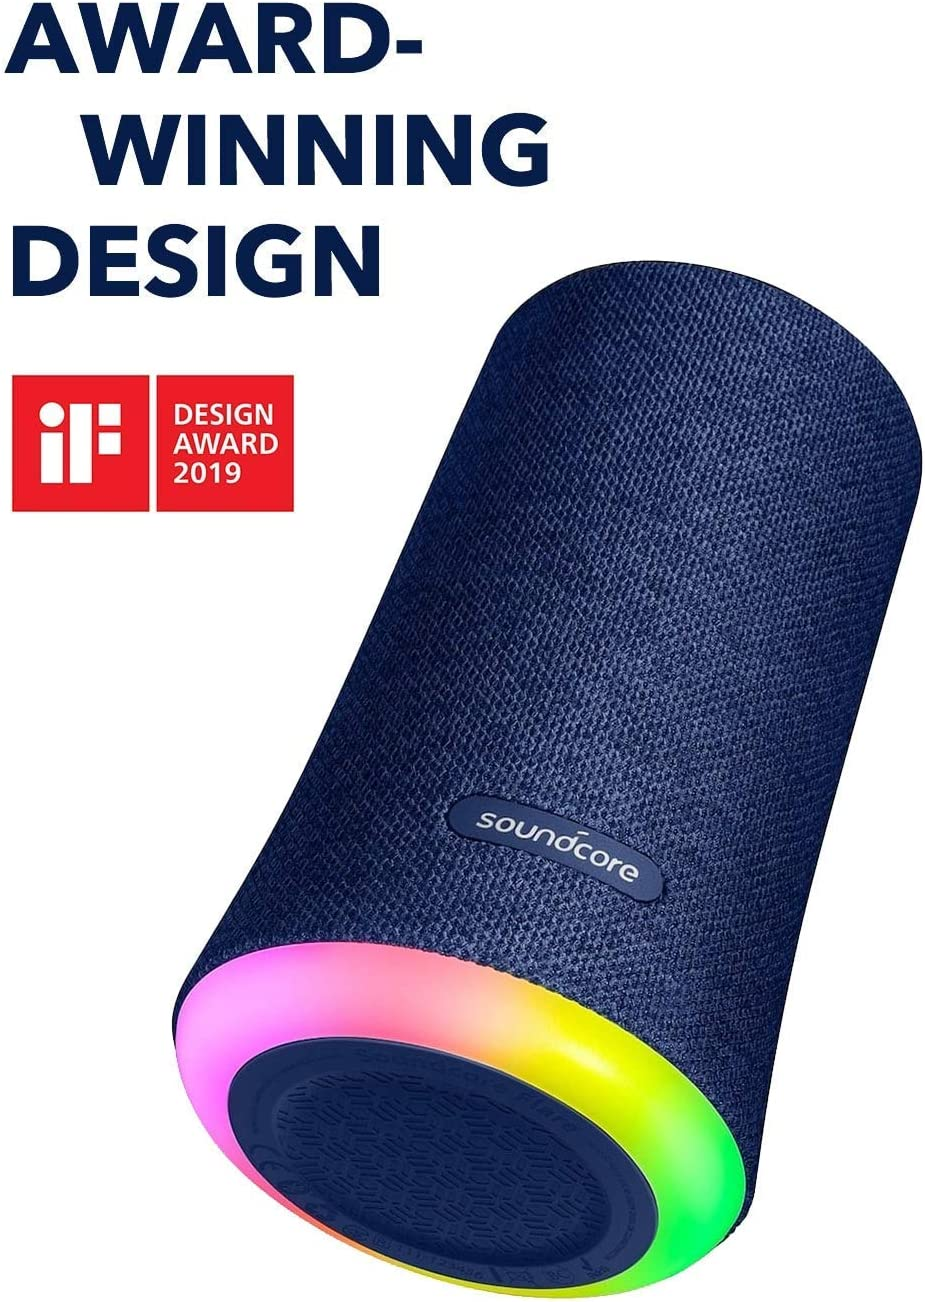 Enhanced Bass IP67 Dustproof /& Waterproof Bluetooth Speaker Renewed Ambient LED Light Portable Party Speaker with 360/° Sound Soundcore Flare Wireless Speaker by Anker and 12H Battery Life/—Blue